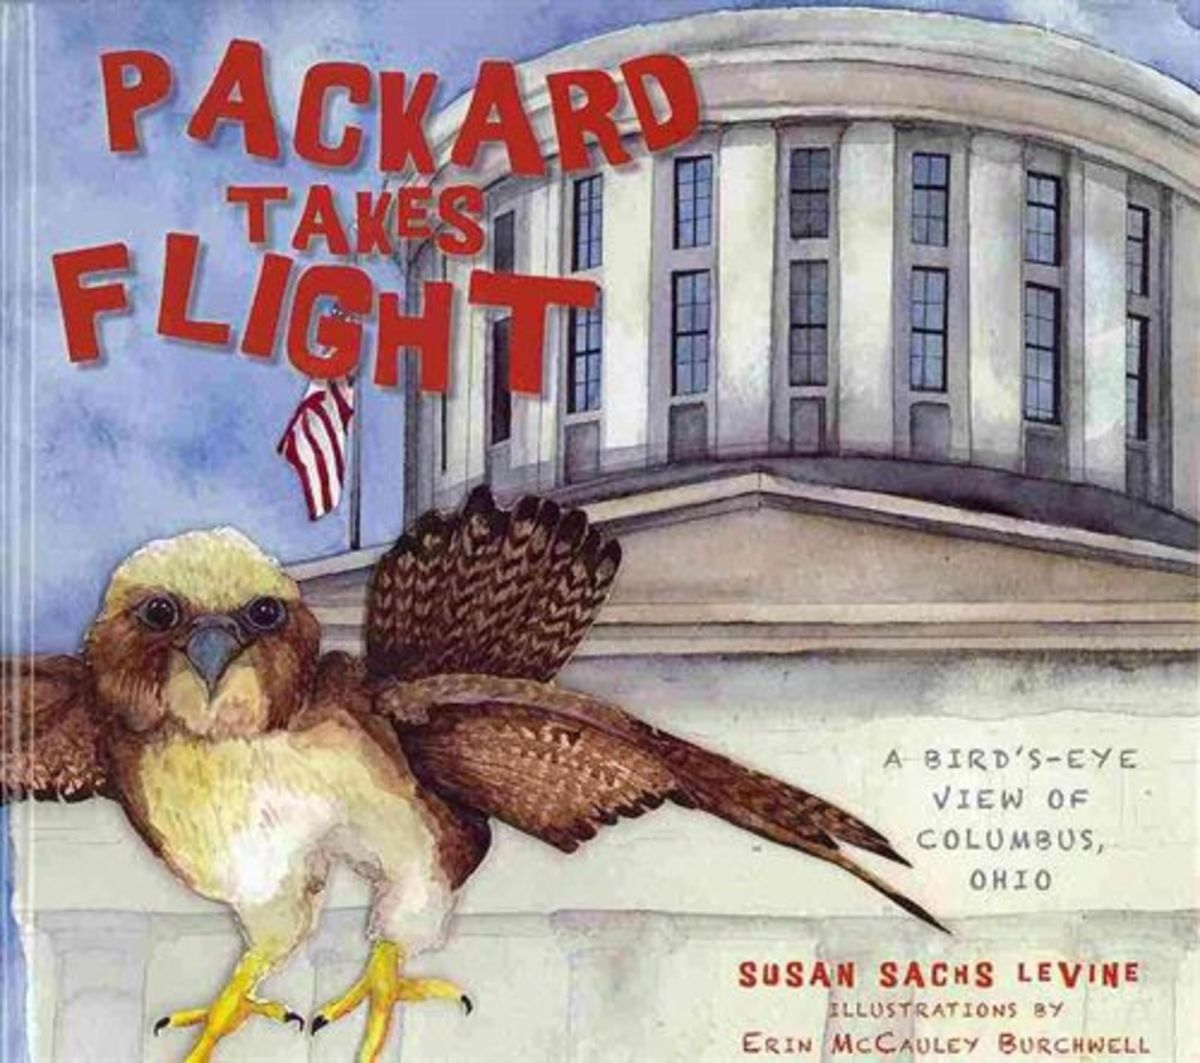 Packard Takes Flight: A Bird's-Eye View of Columbus, Ohio by Susan Sachs Levine - Image credit: amazon.com